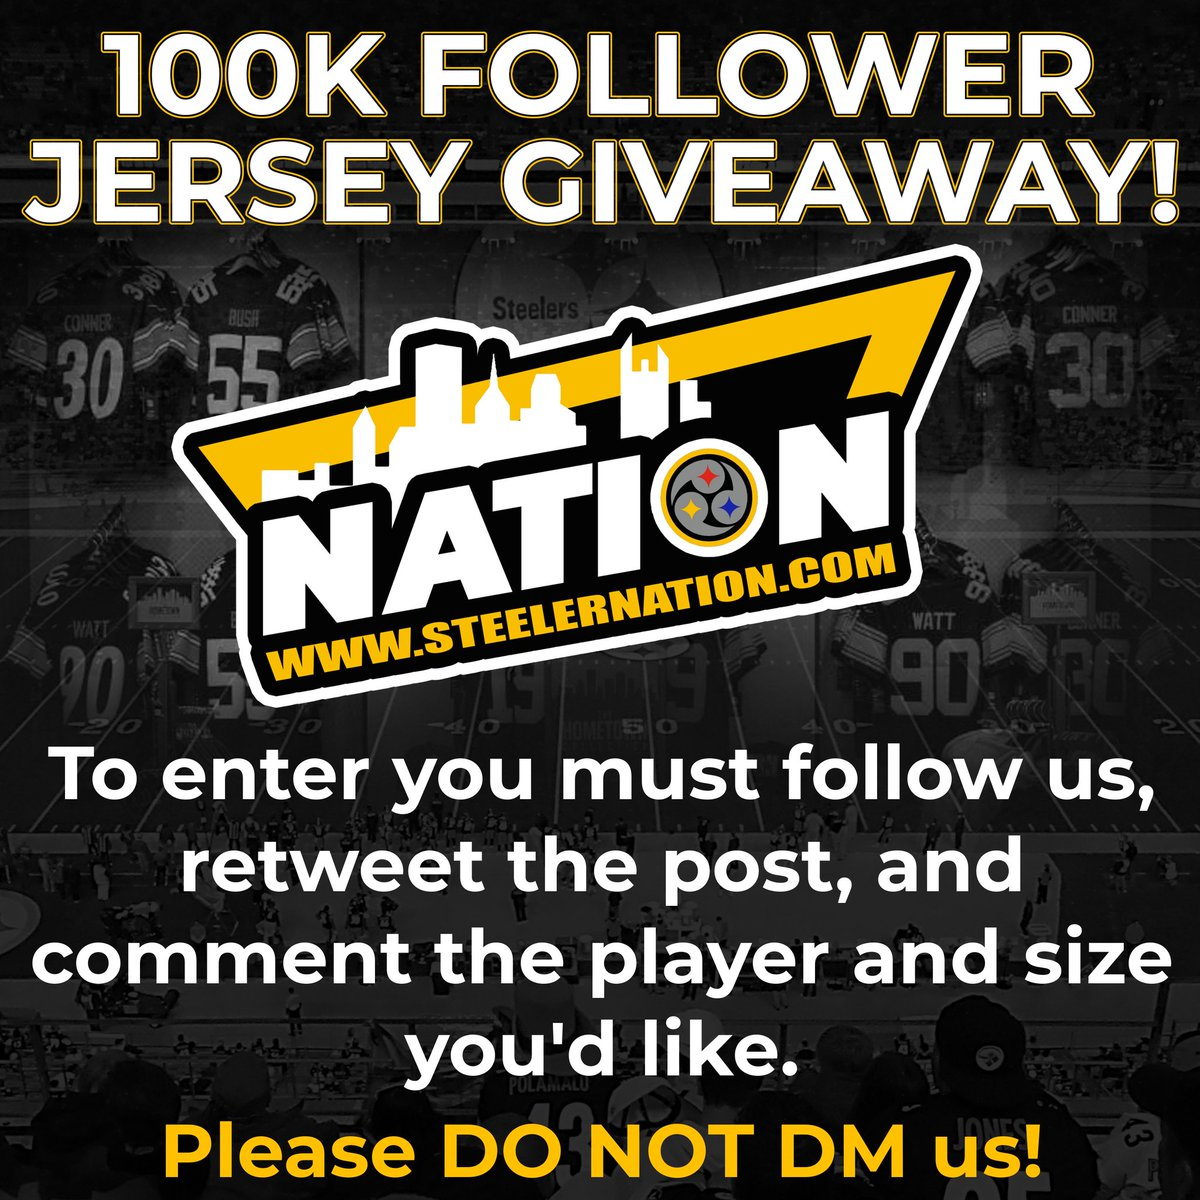 #SteelerNation we're less than 2,000 followers away from 100k so let's celebrate when we hit that mark with a jersey giveaway.   To win you must follow us, and RETWEET this post   Comment what player, and size jersey you'd like to receive if you're picked! #Steelers